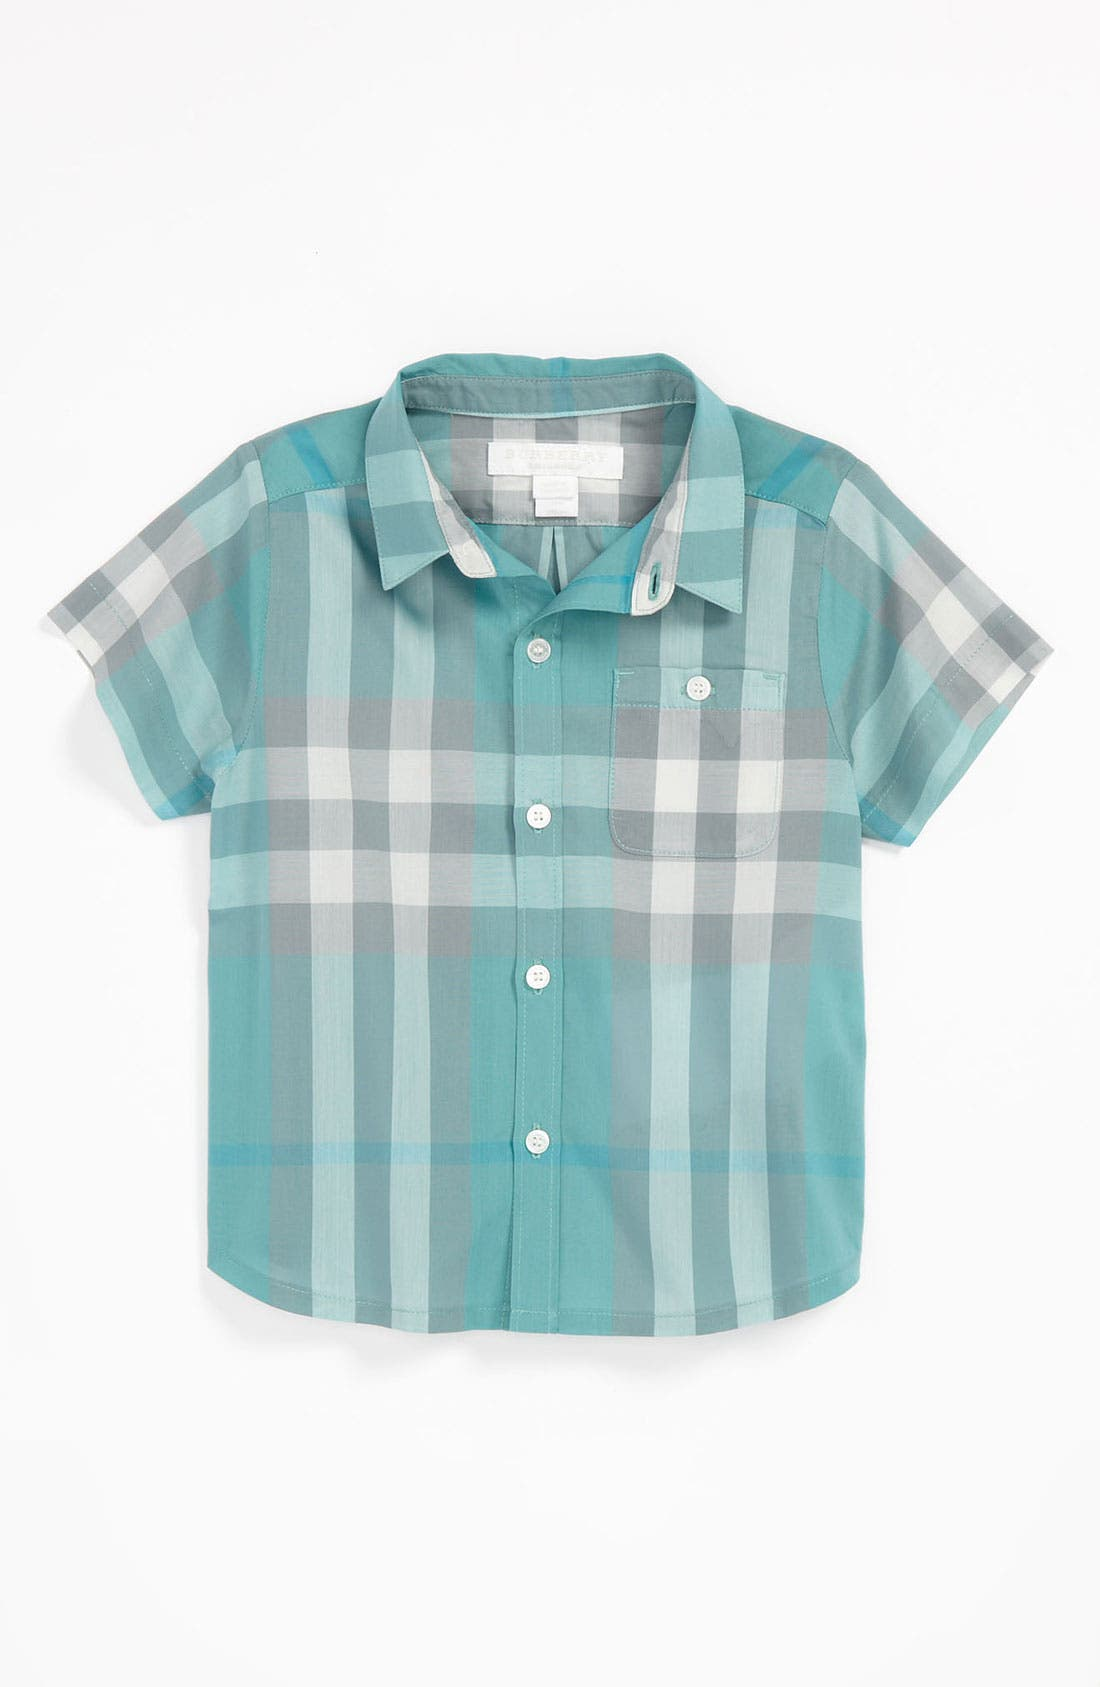 Alternate Image 1 Selected - Burberry 'Tyson' Shirt (Baby)